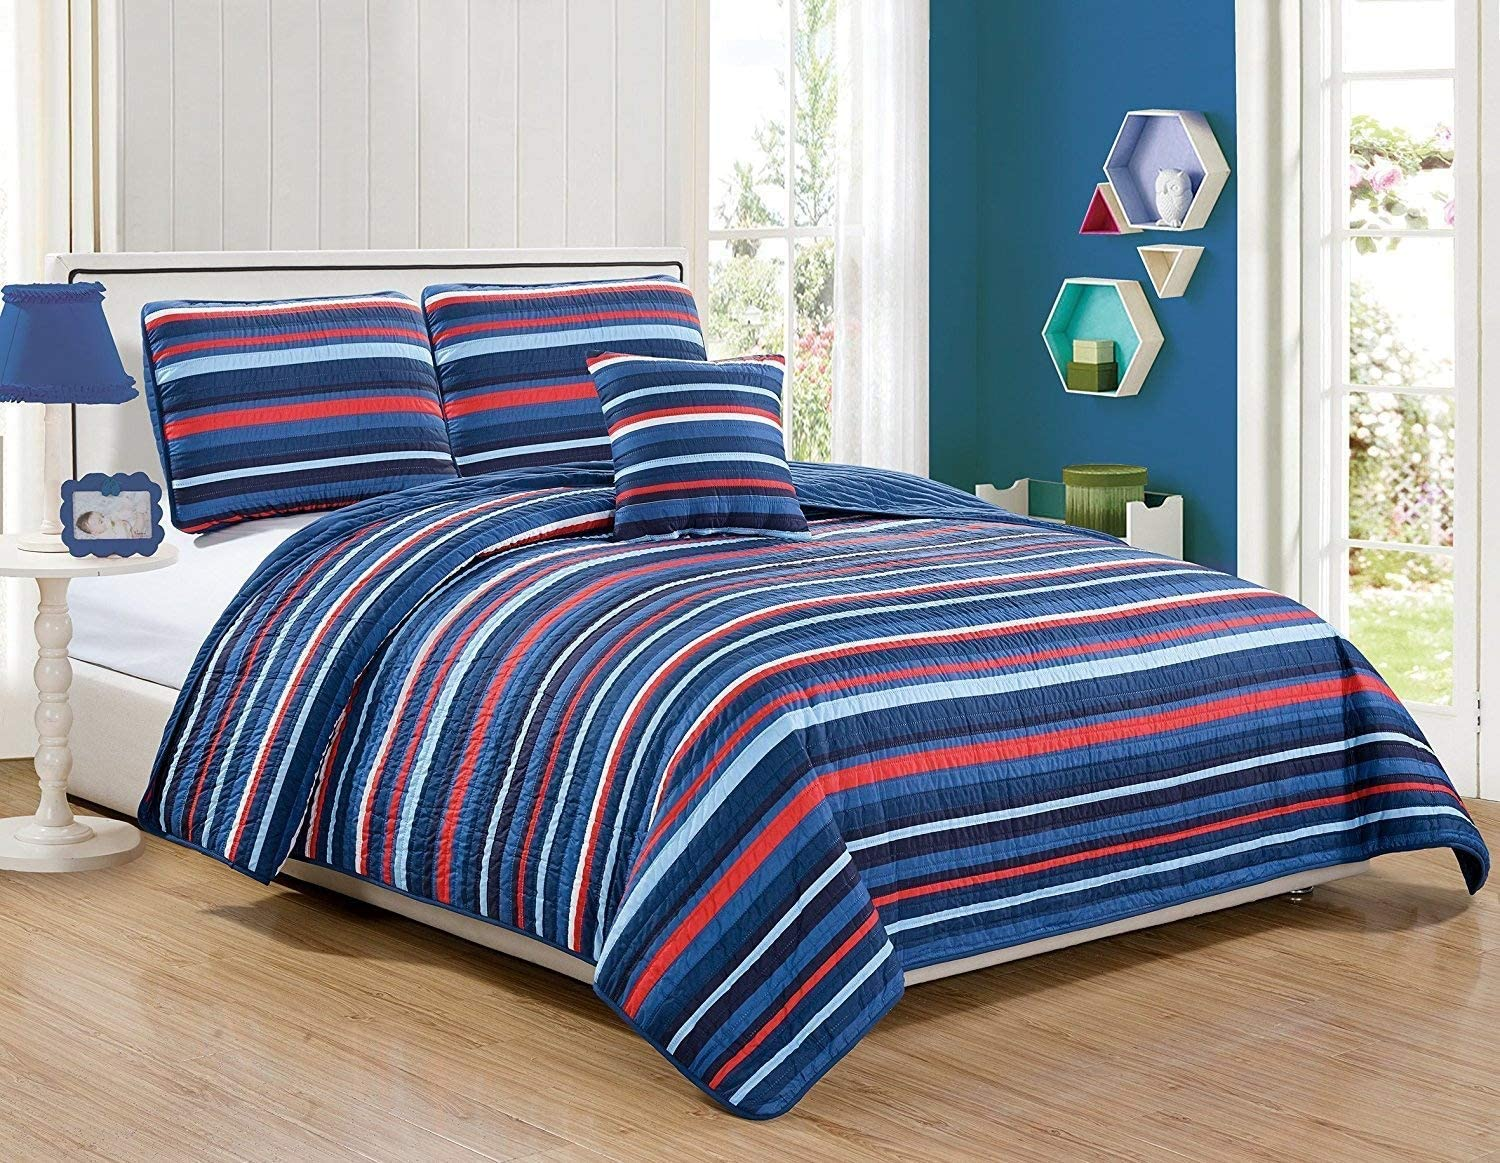 Twin Size 3pc Bedspread Set for Boys/Teens Stripes Navy Blue Red Light Blue New